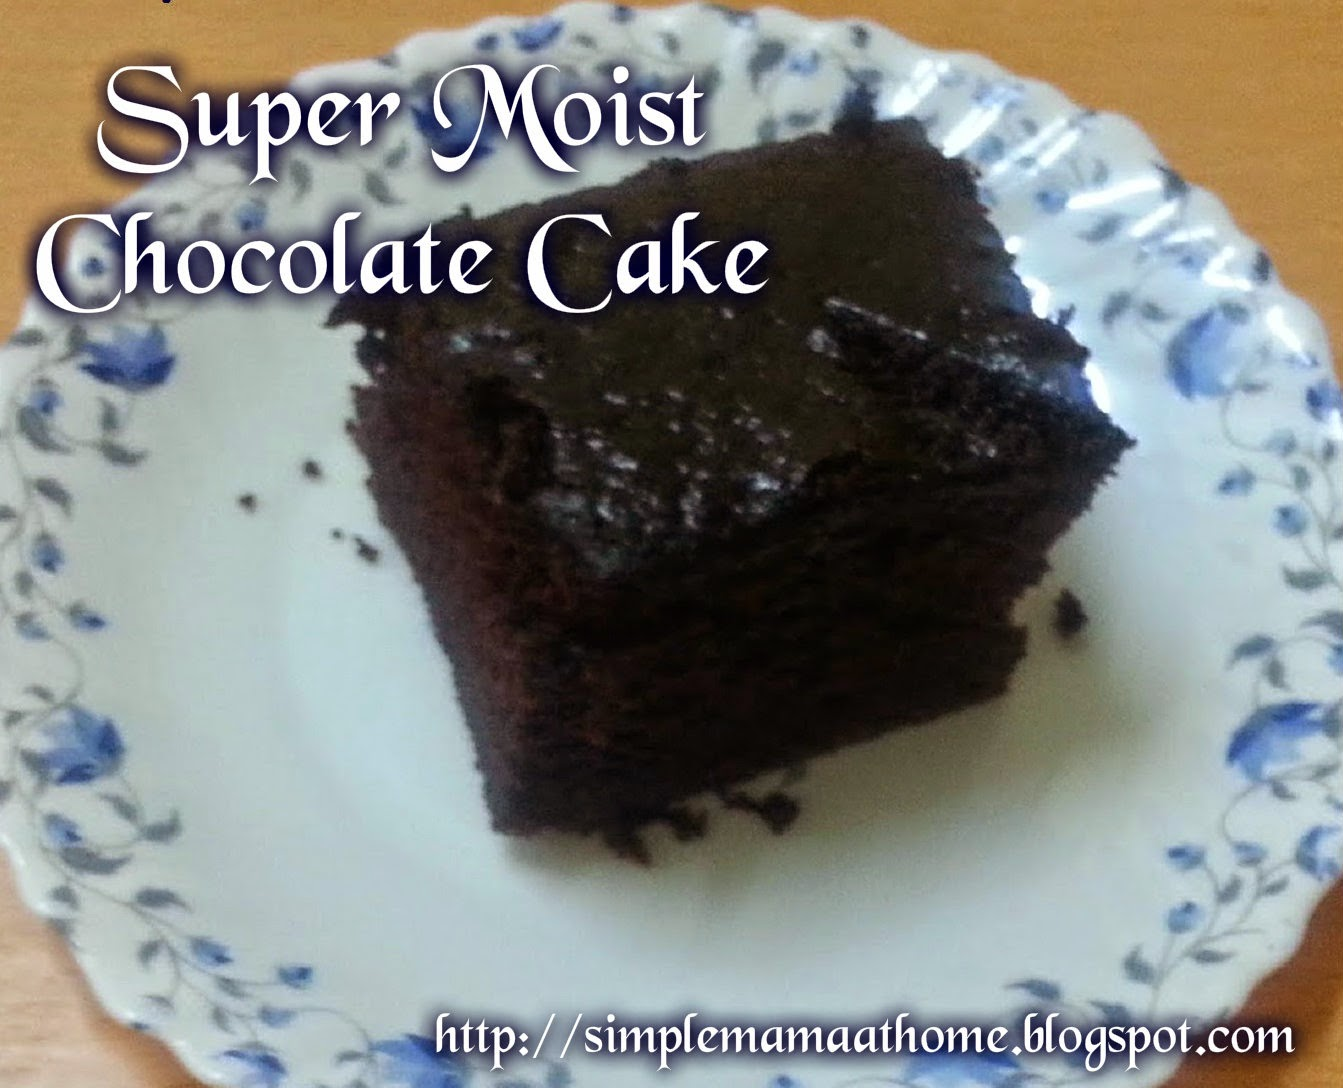 Super Moist Chocolate Cake